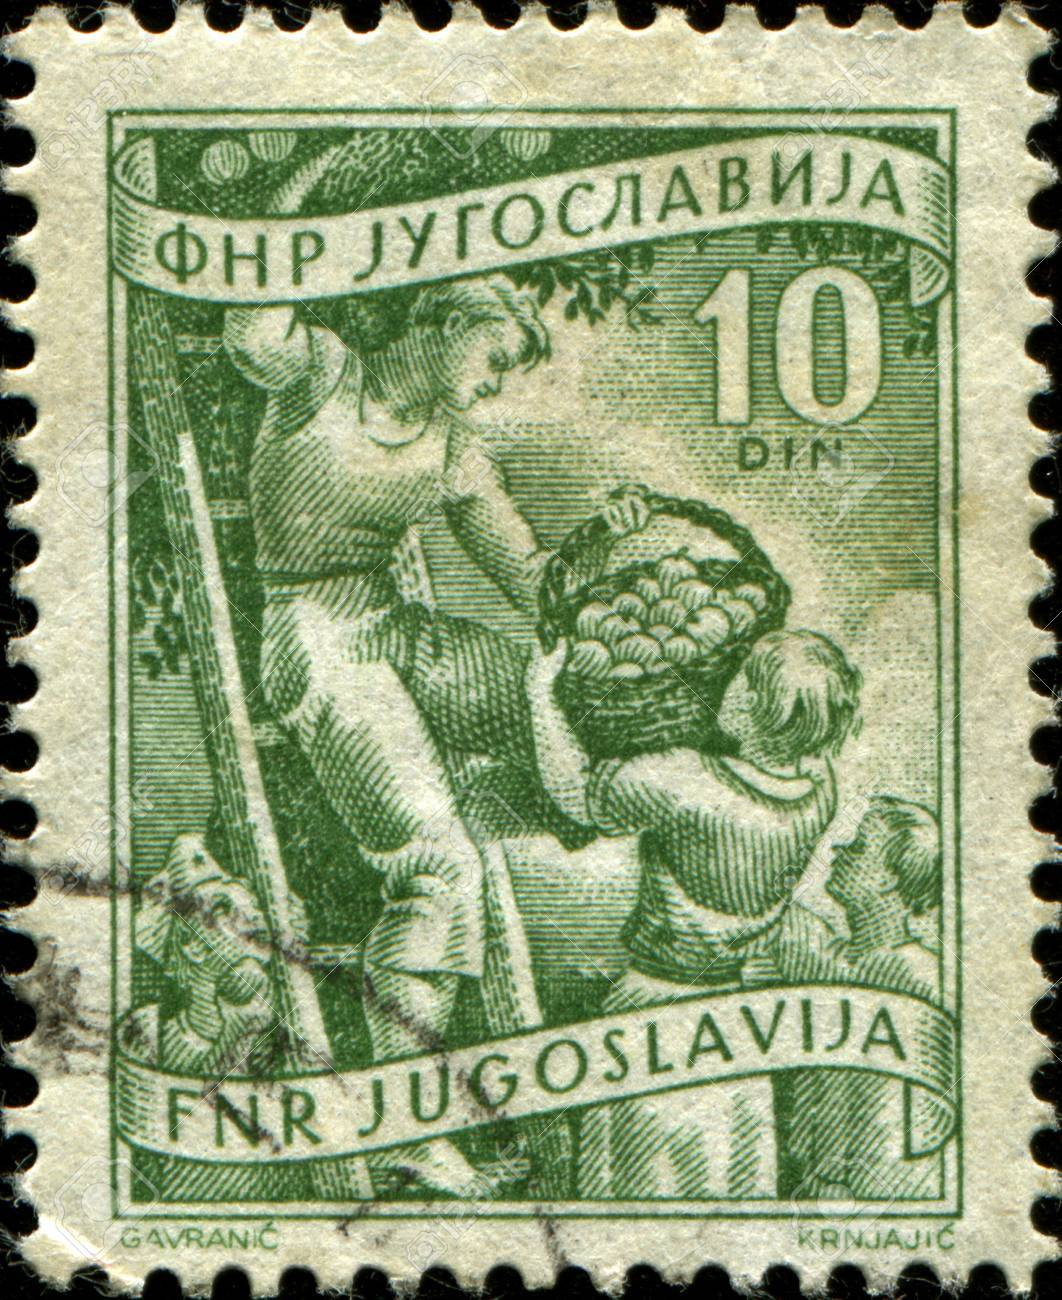 YUGOSLAVIA - CIRCA 1950  A stamp printed in Yugoslavia shows people colelcting apple, circa 1950  Stock Photo - 17269763